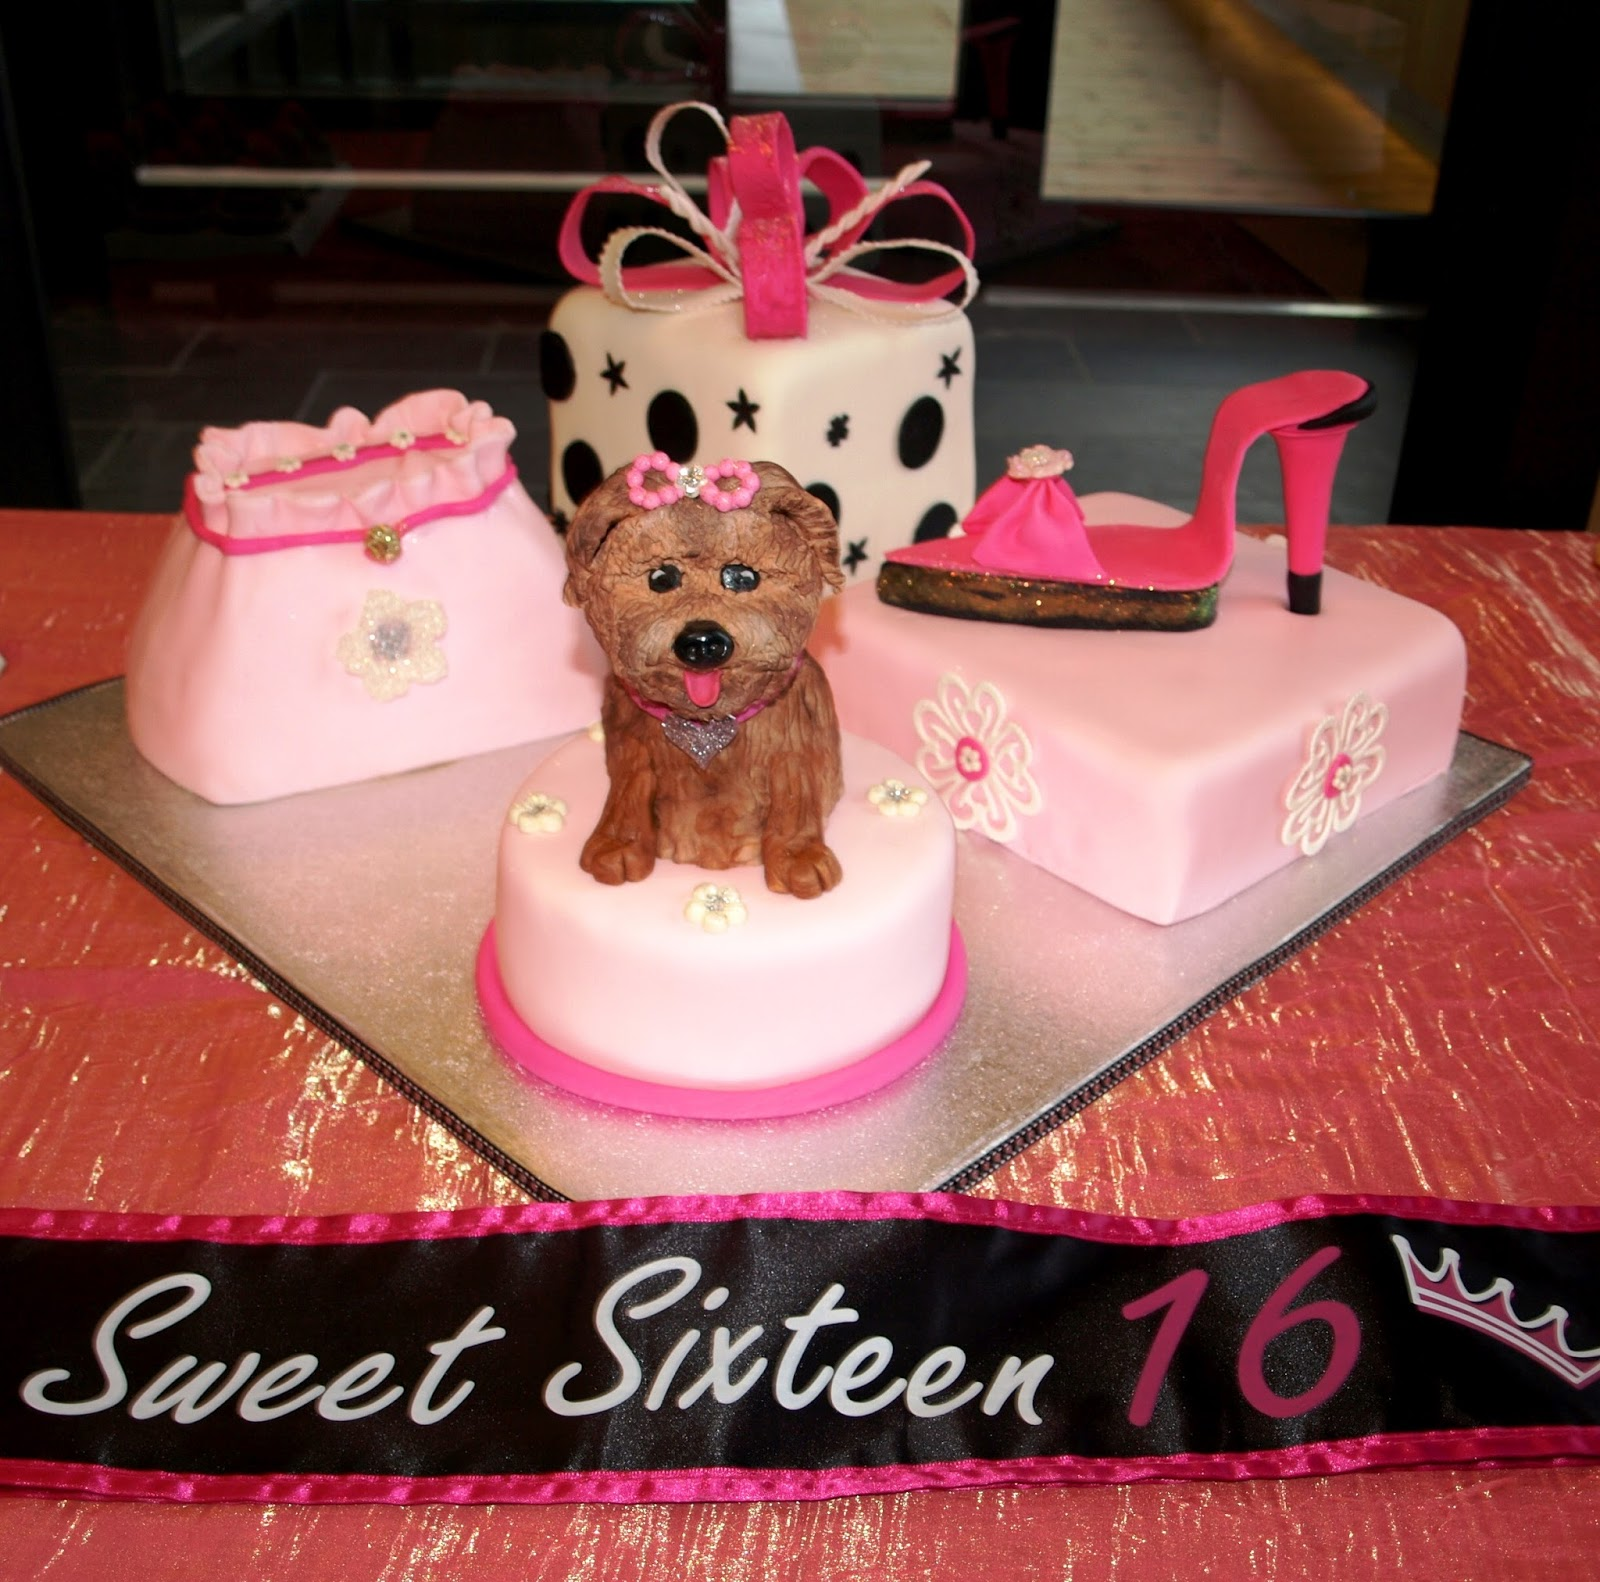 Sweet 16 Birthday Cake - Birthday